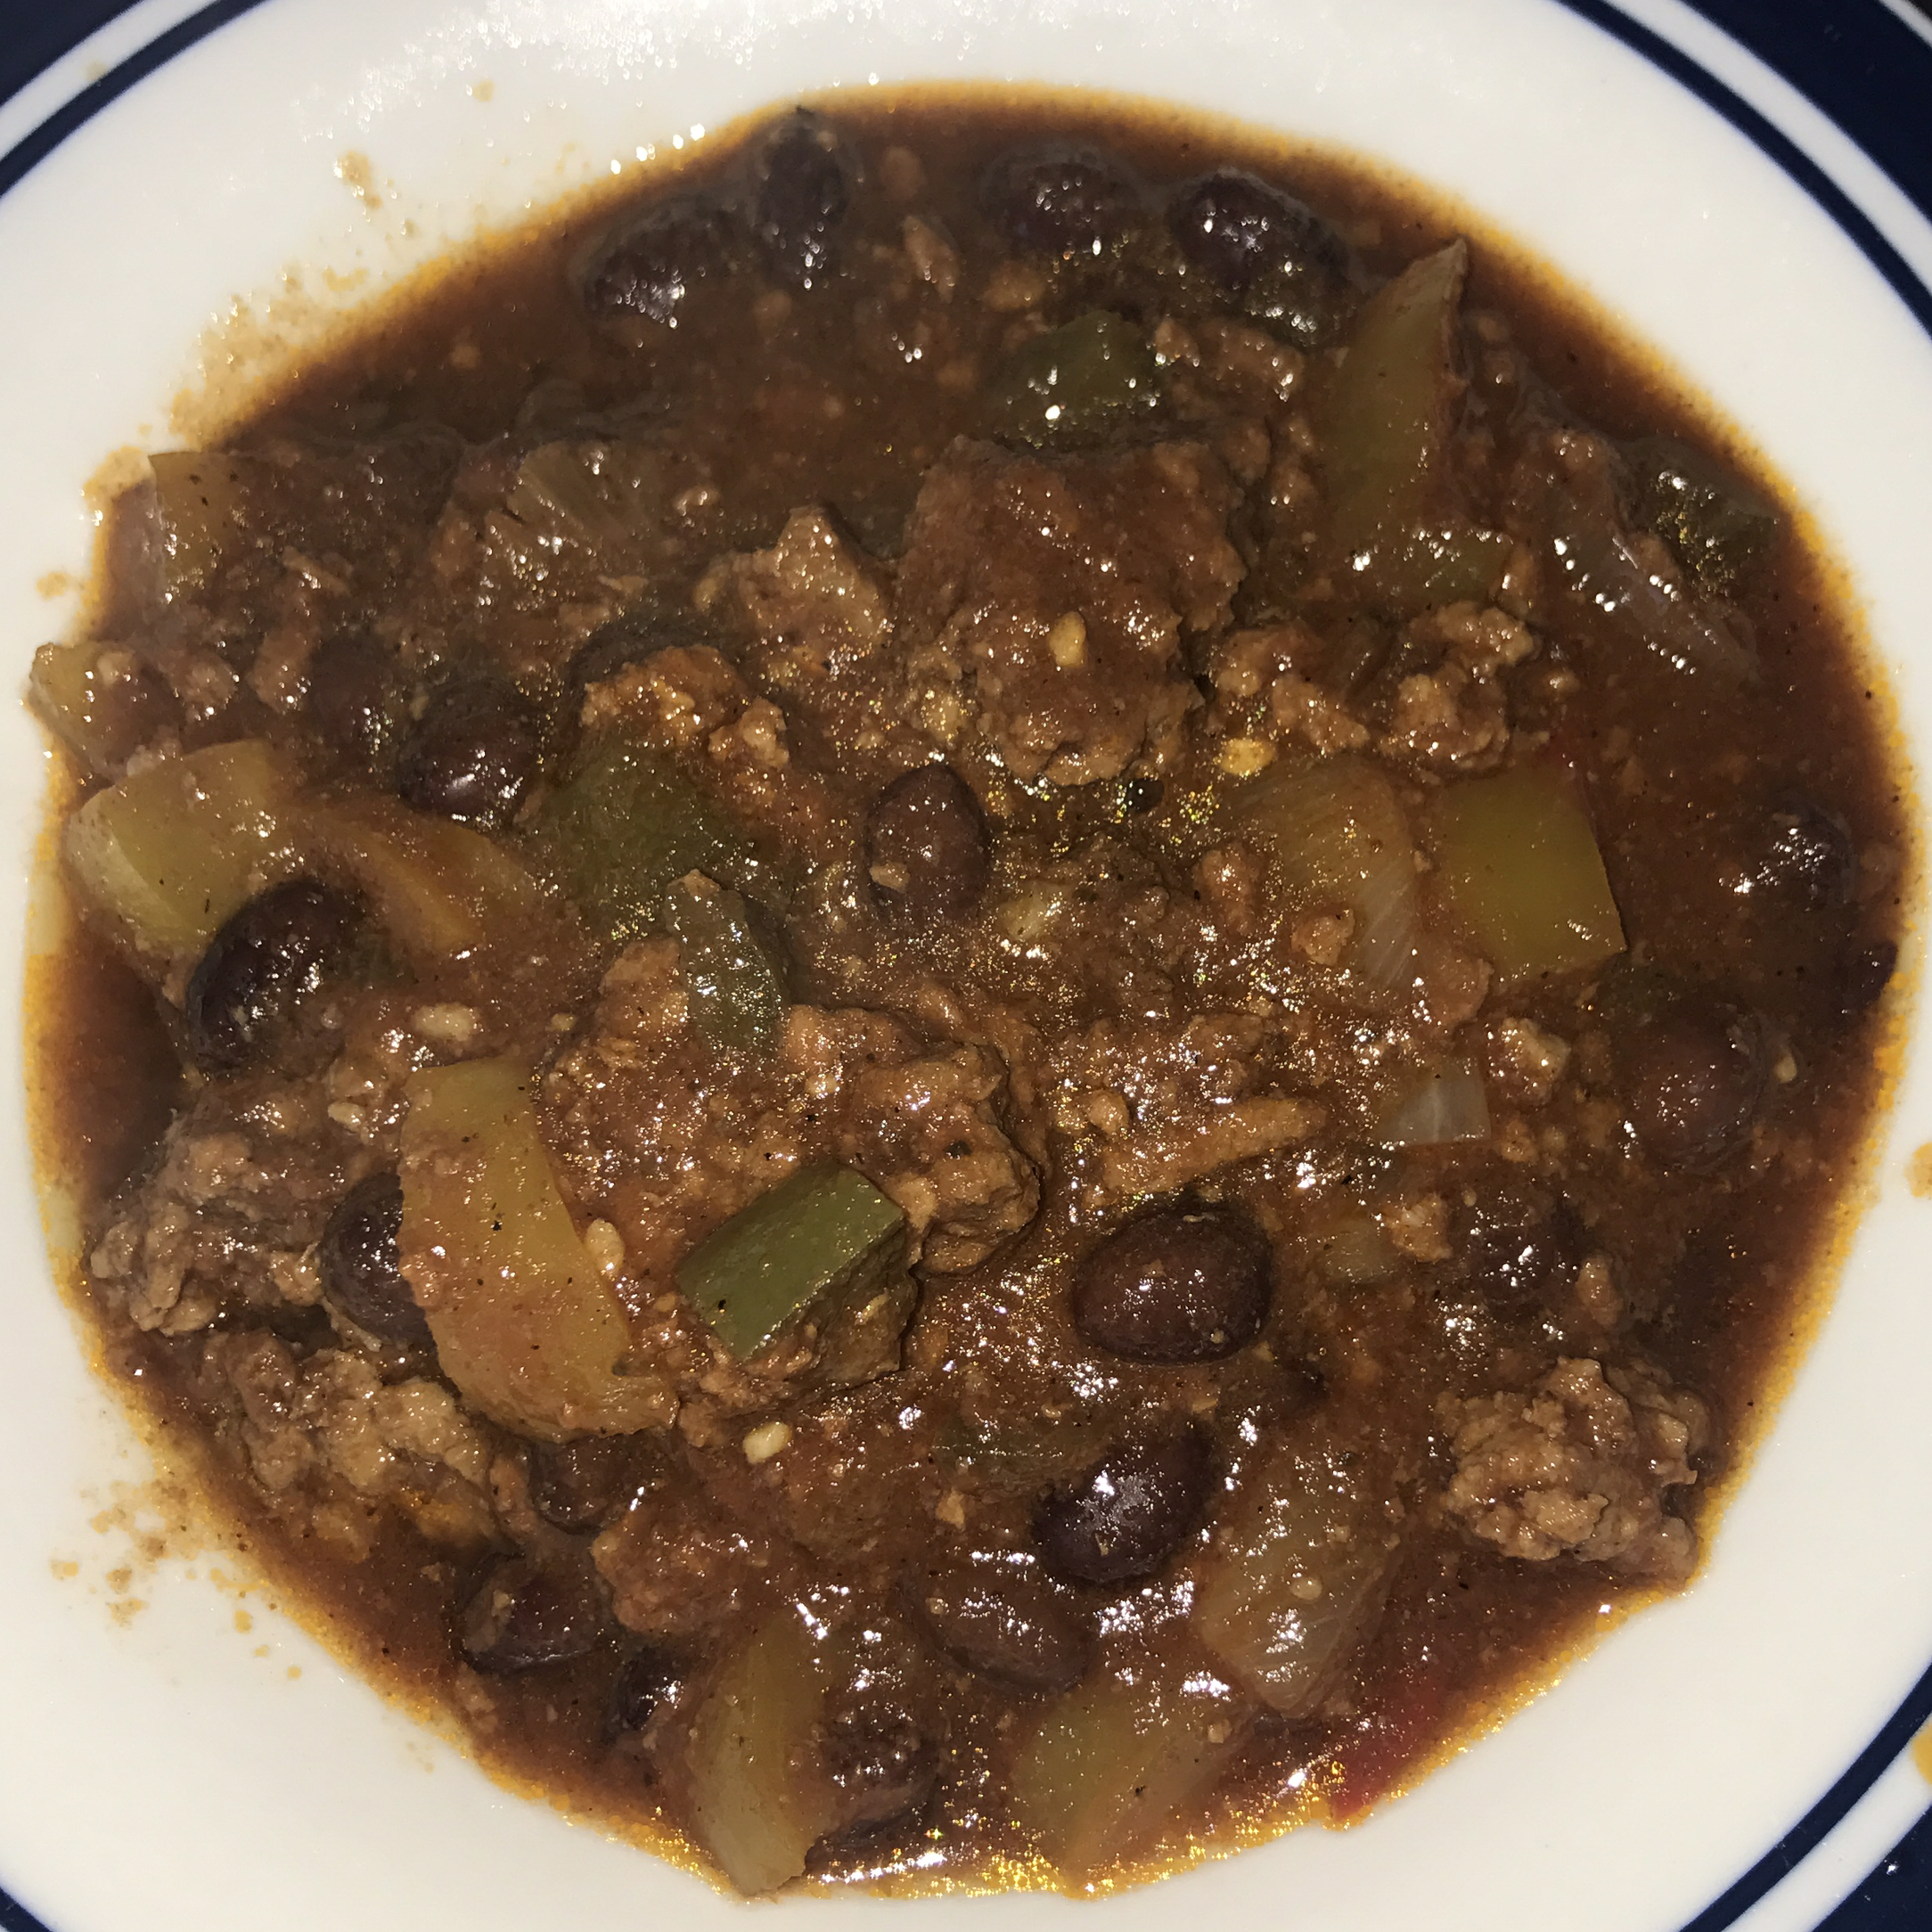 Christina's Slow Cooker Chili Tina Dalie